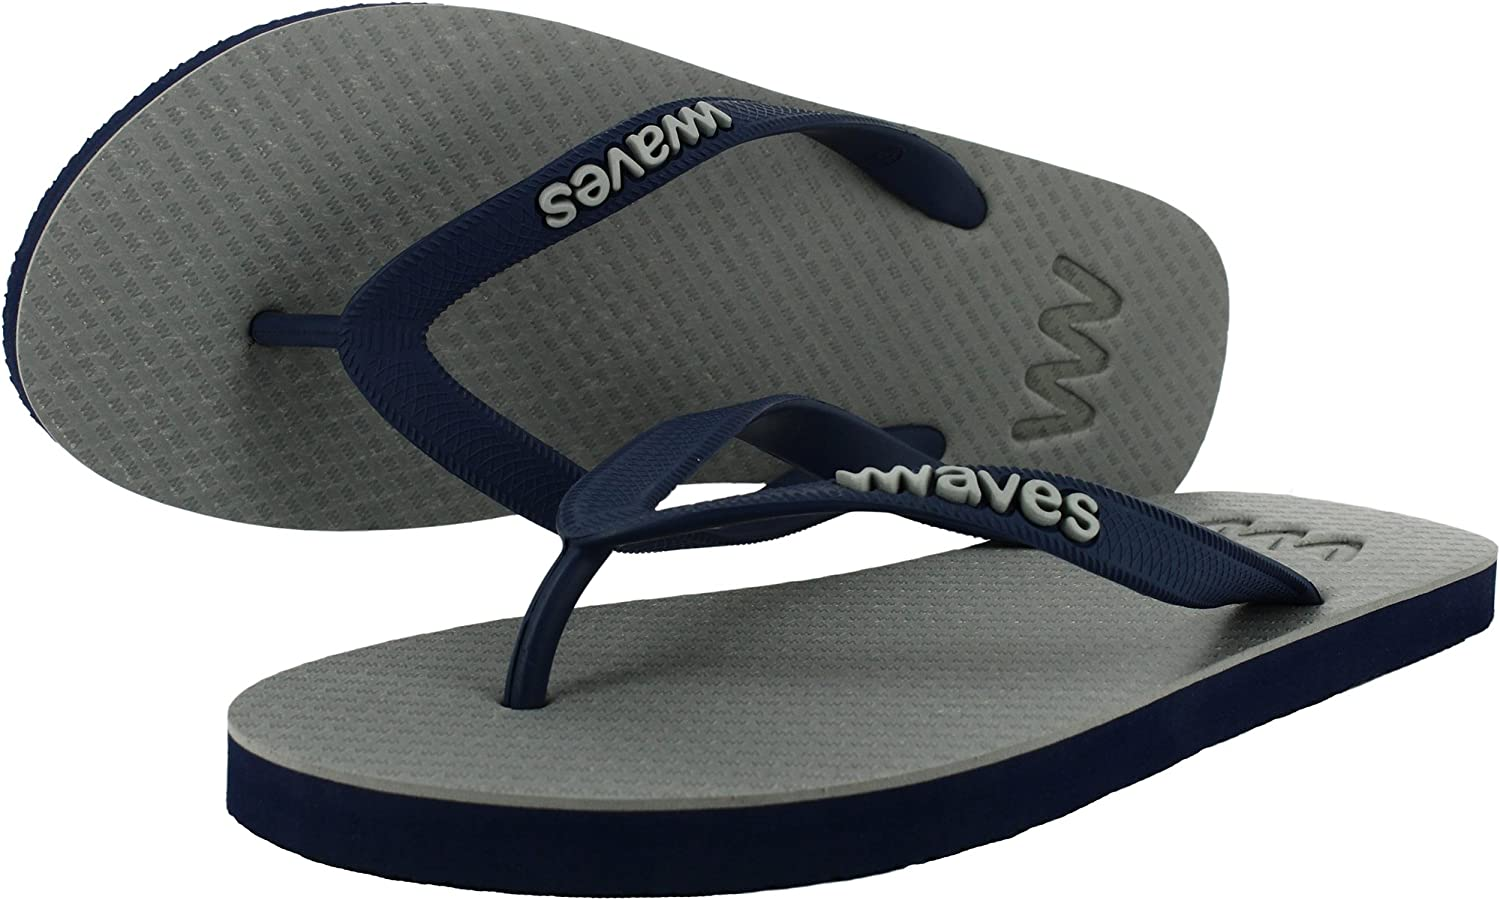 New Waves Black and Gold Twofold Real Rubber Flip Flops for Men Beach Gym Shower